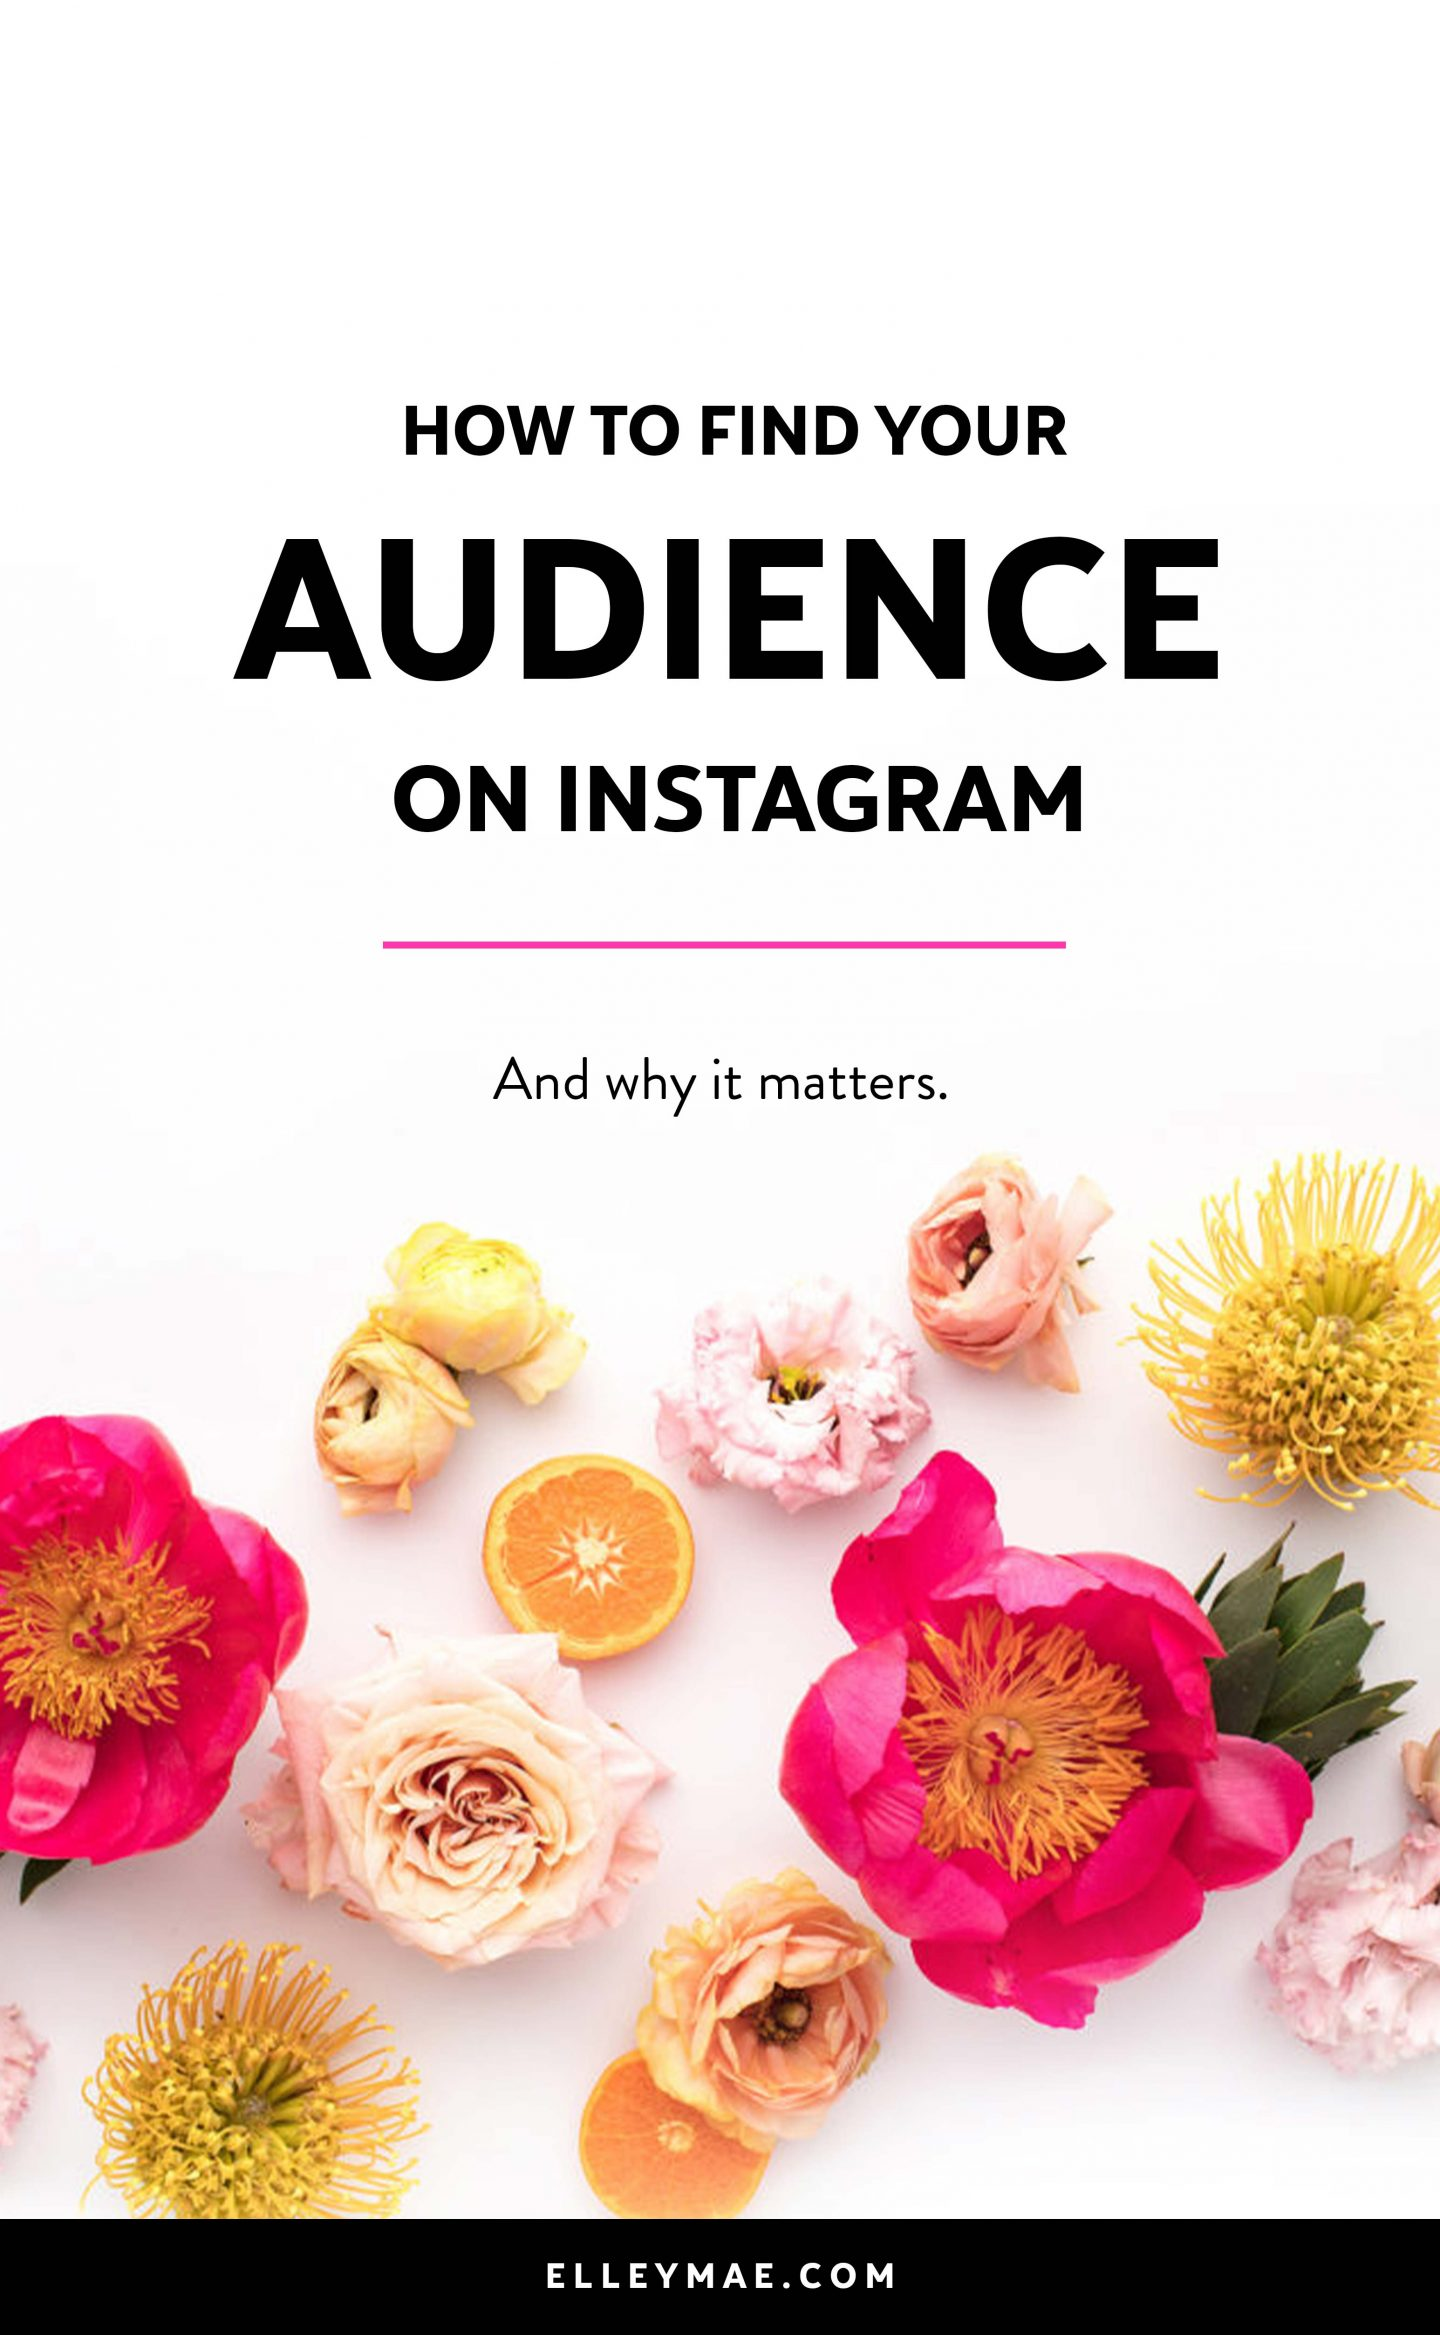 Despite what you may have thought up until now, your audience on Instagram won't always find you - you have to find them. But actively seeking out your die-hard fans on a platform like Instagram with over 400 million monthly users seems crazy right? WRONG. I've simplified the method to finding your audience on Instagram & teach you why it's important (oh and how to actually KEEP them! Learn more at ElleyMae.com | #InstagramMarketing #SocialMediaMarketing #SocialMediaGuru